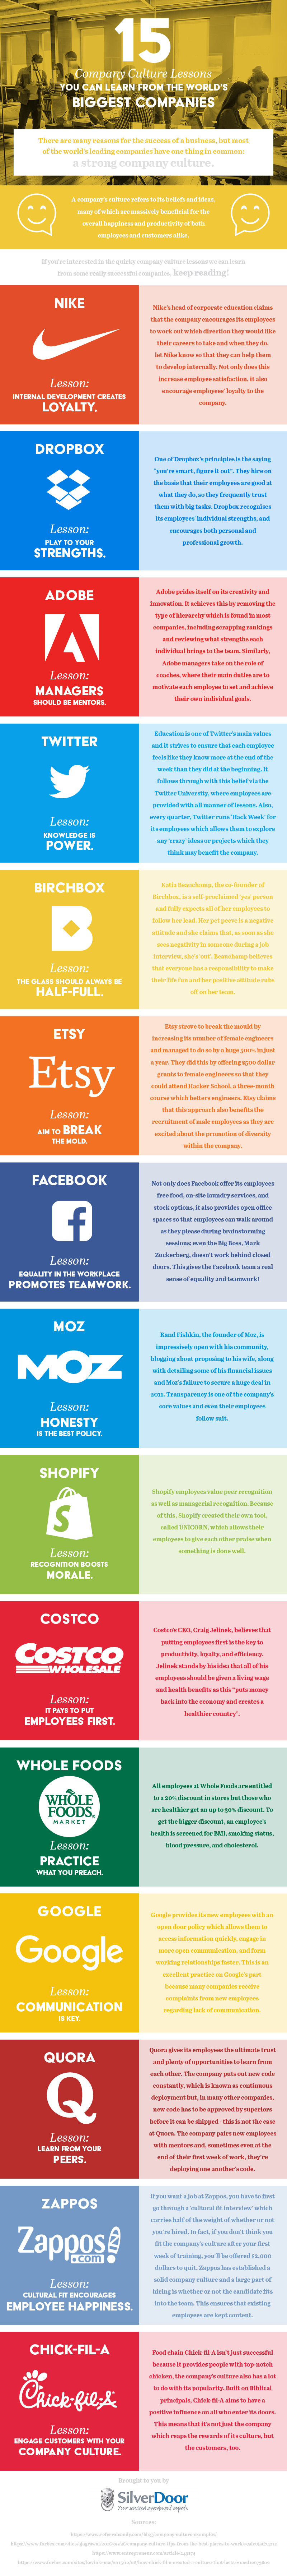 company-culture-lessons-infographic.jpg